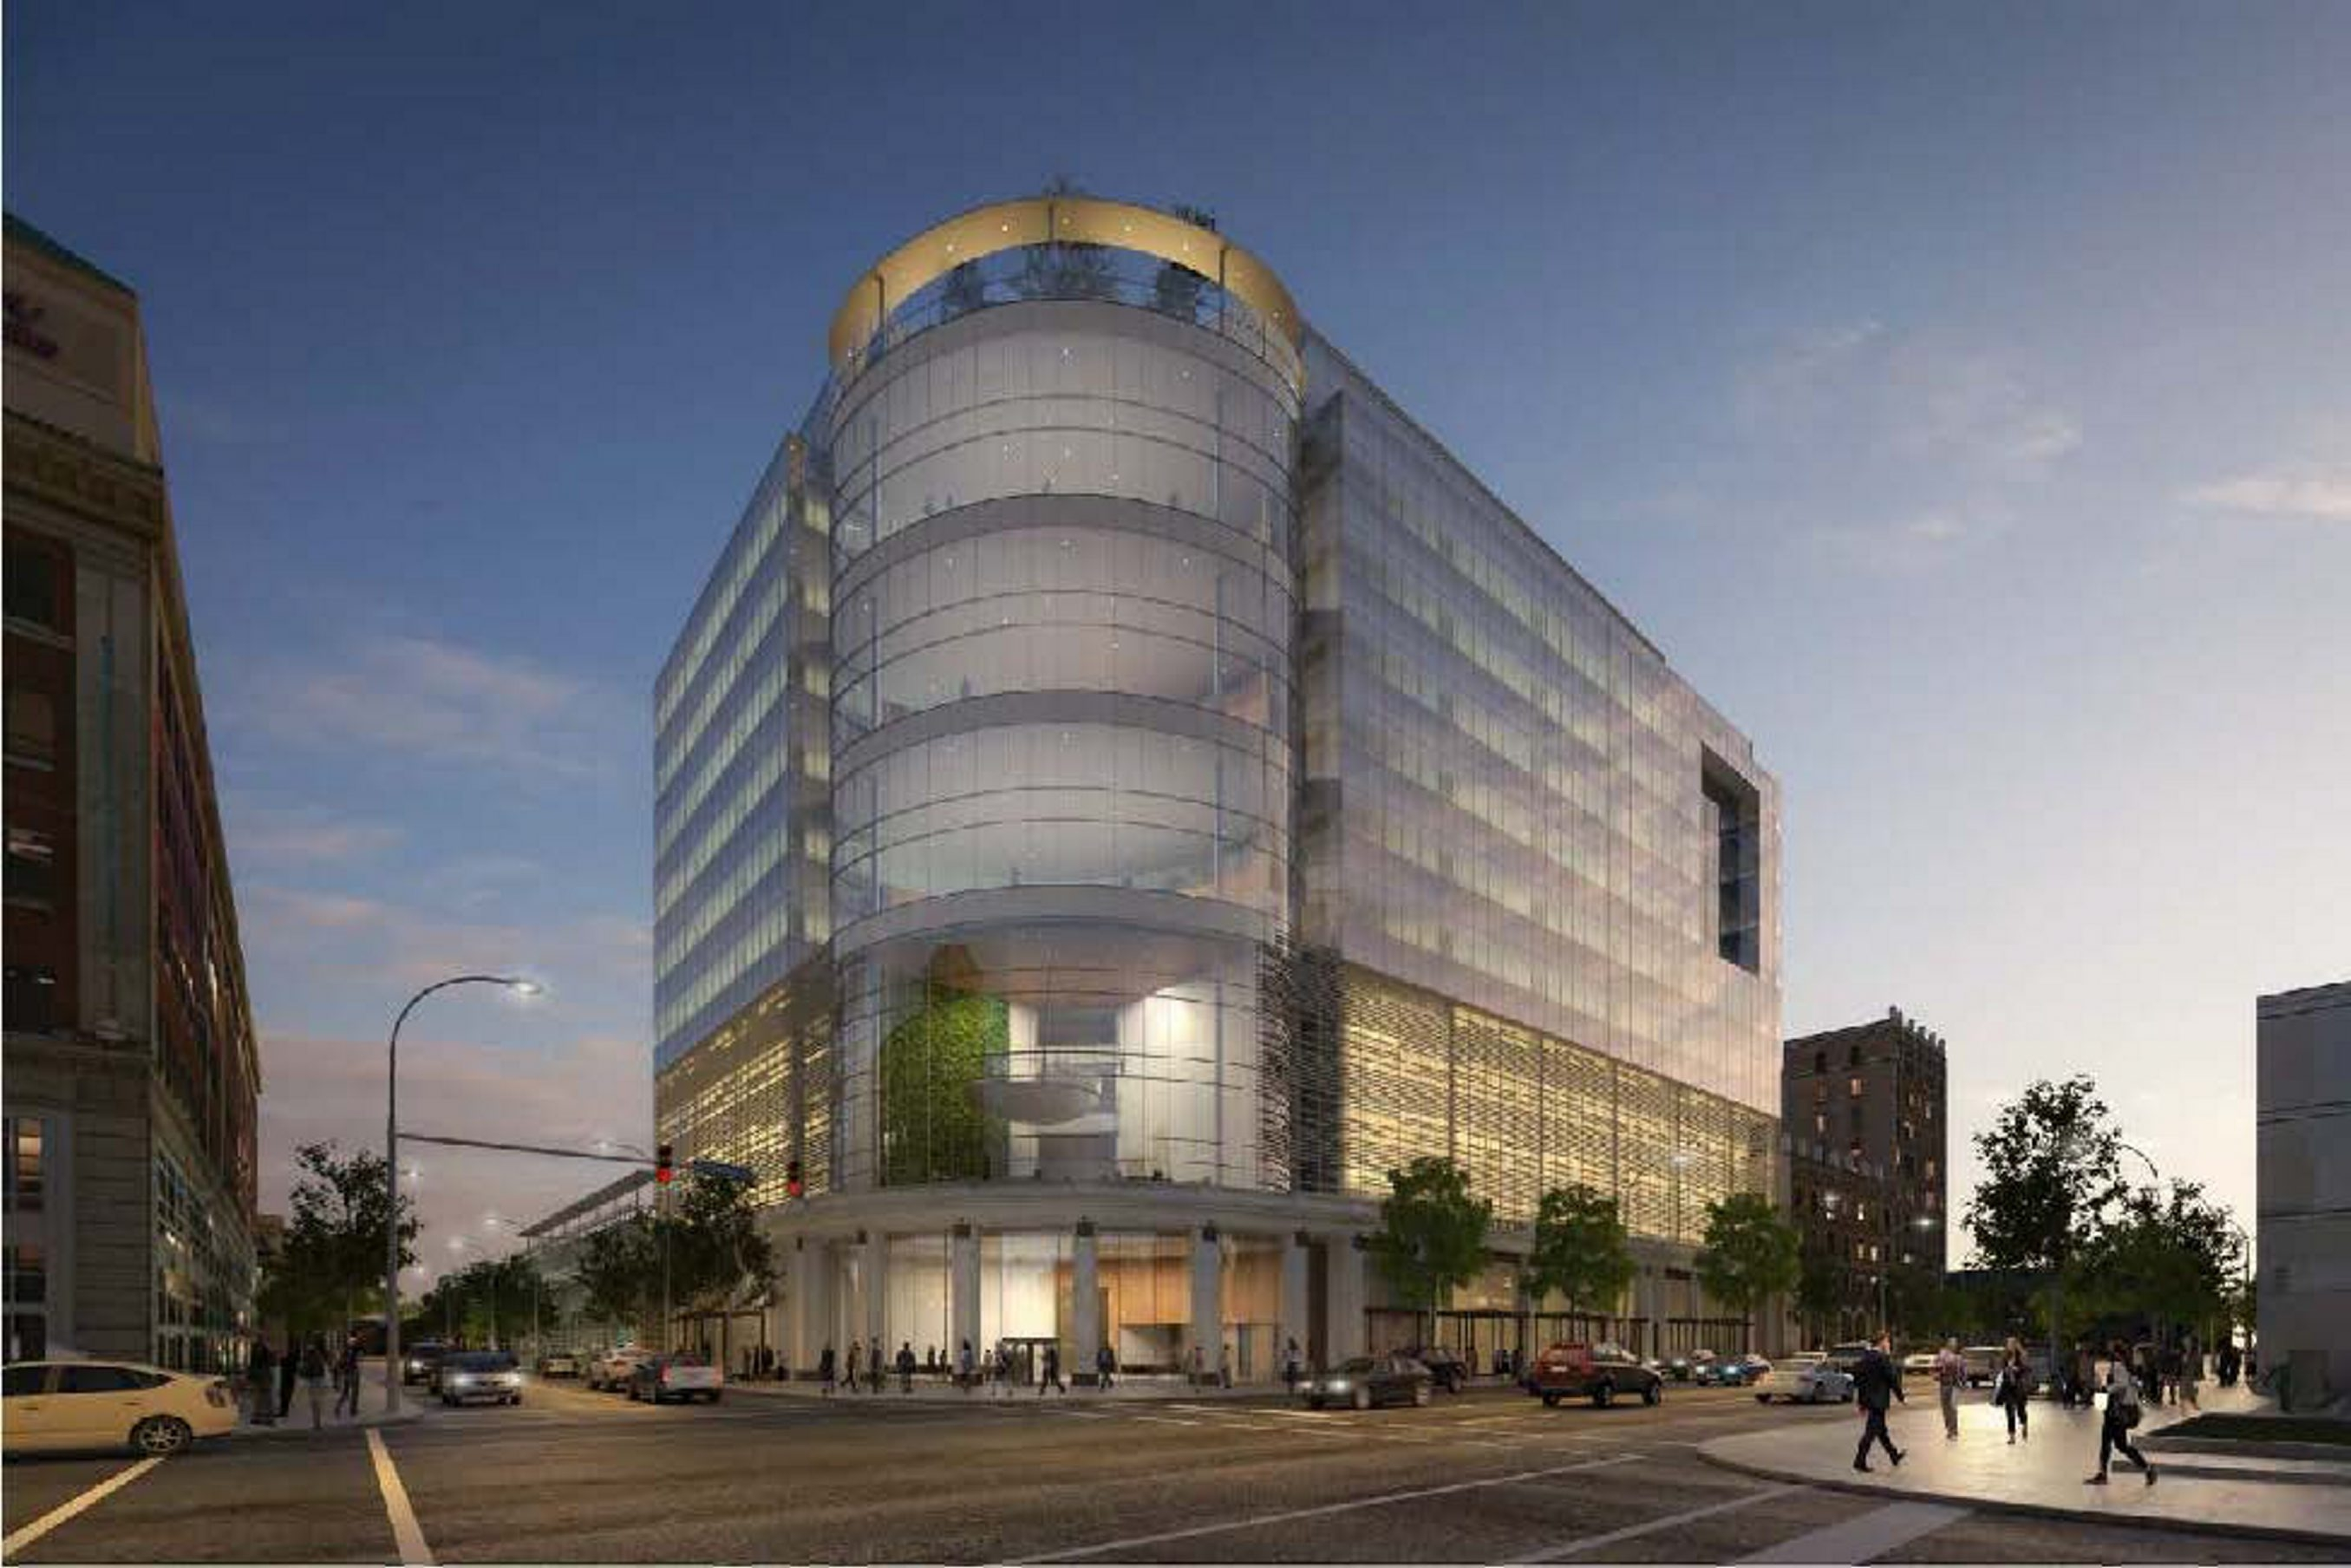 The proposed Uniland building at 250 Delaware Ave. will have modified scope.